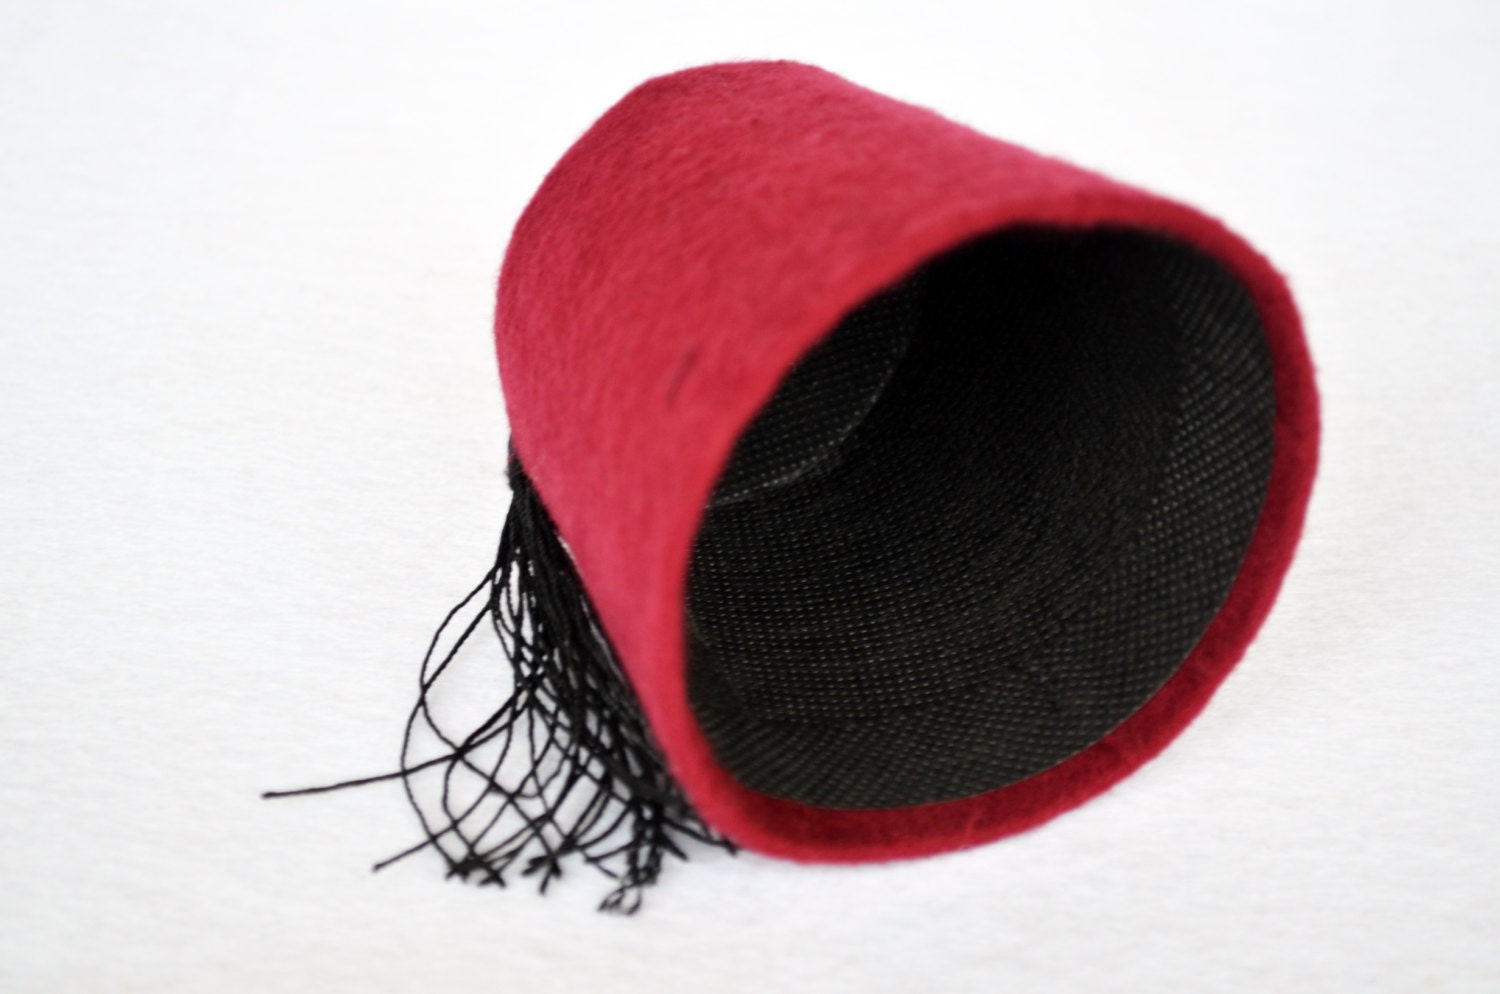 Mini Doctor Who Fez Hat Fezzes Are Cool Cat Fez Eleventh Fezzes Are Cool Cat